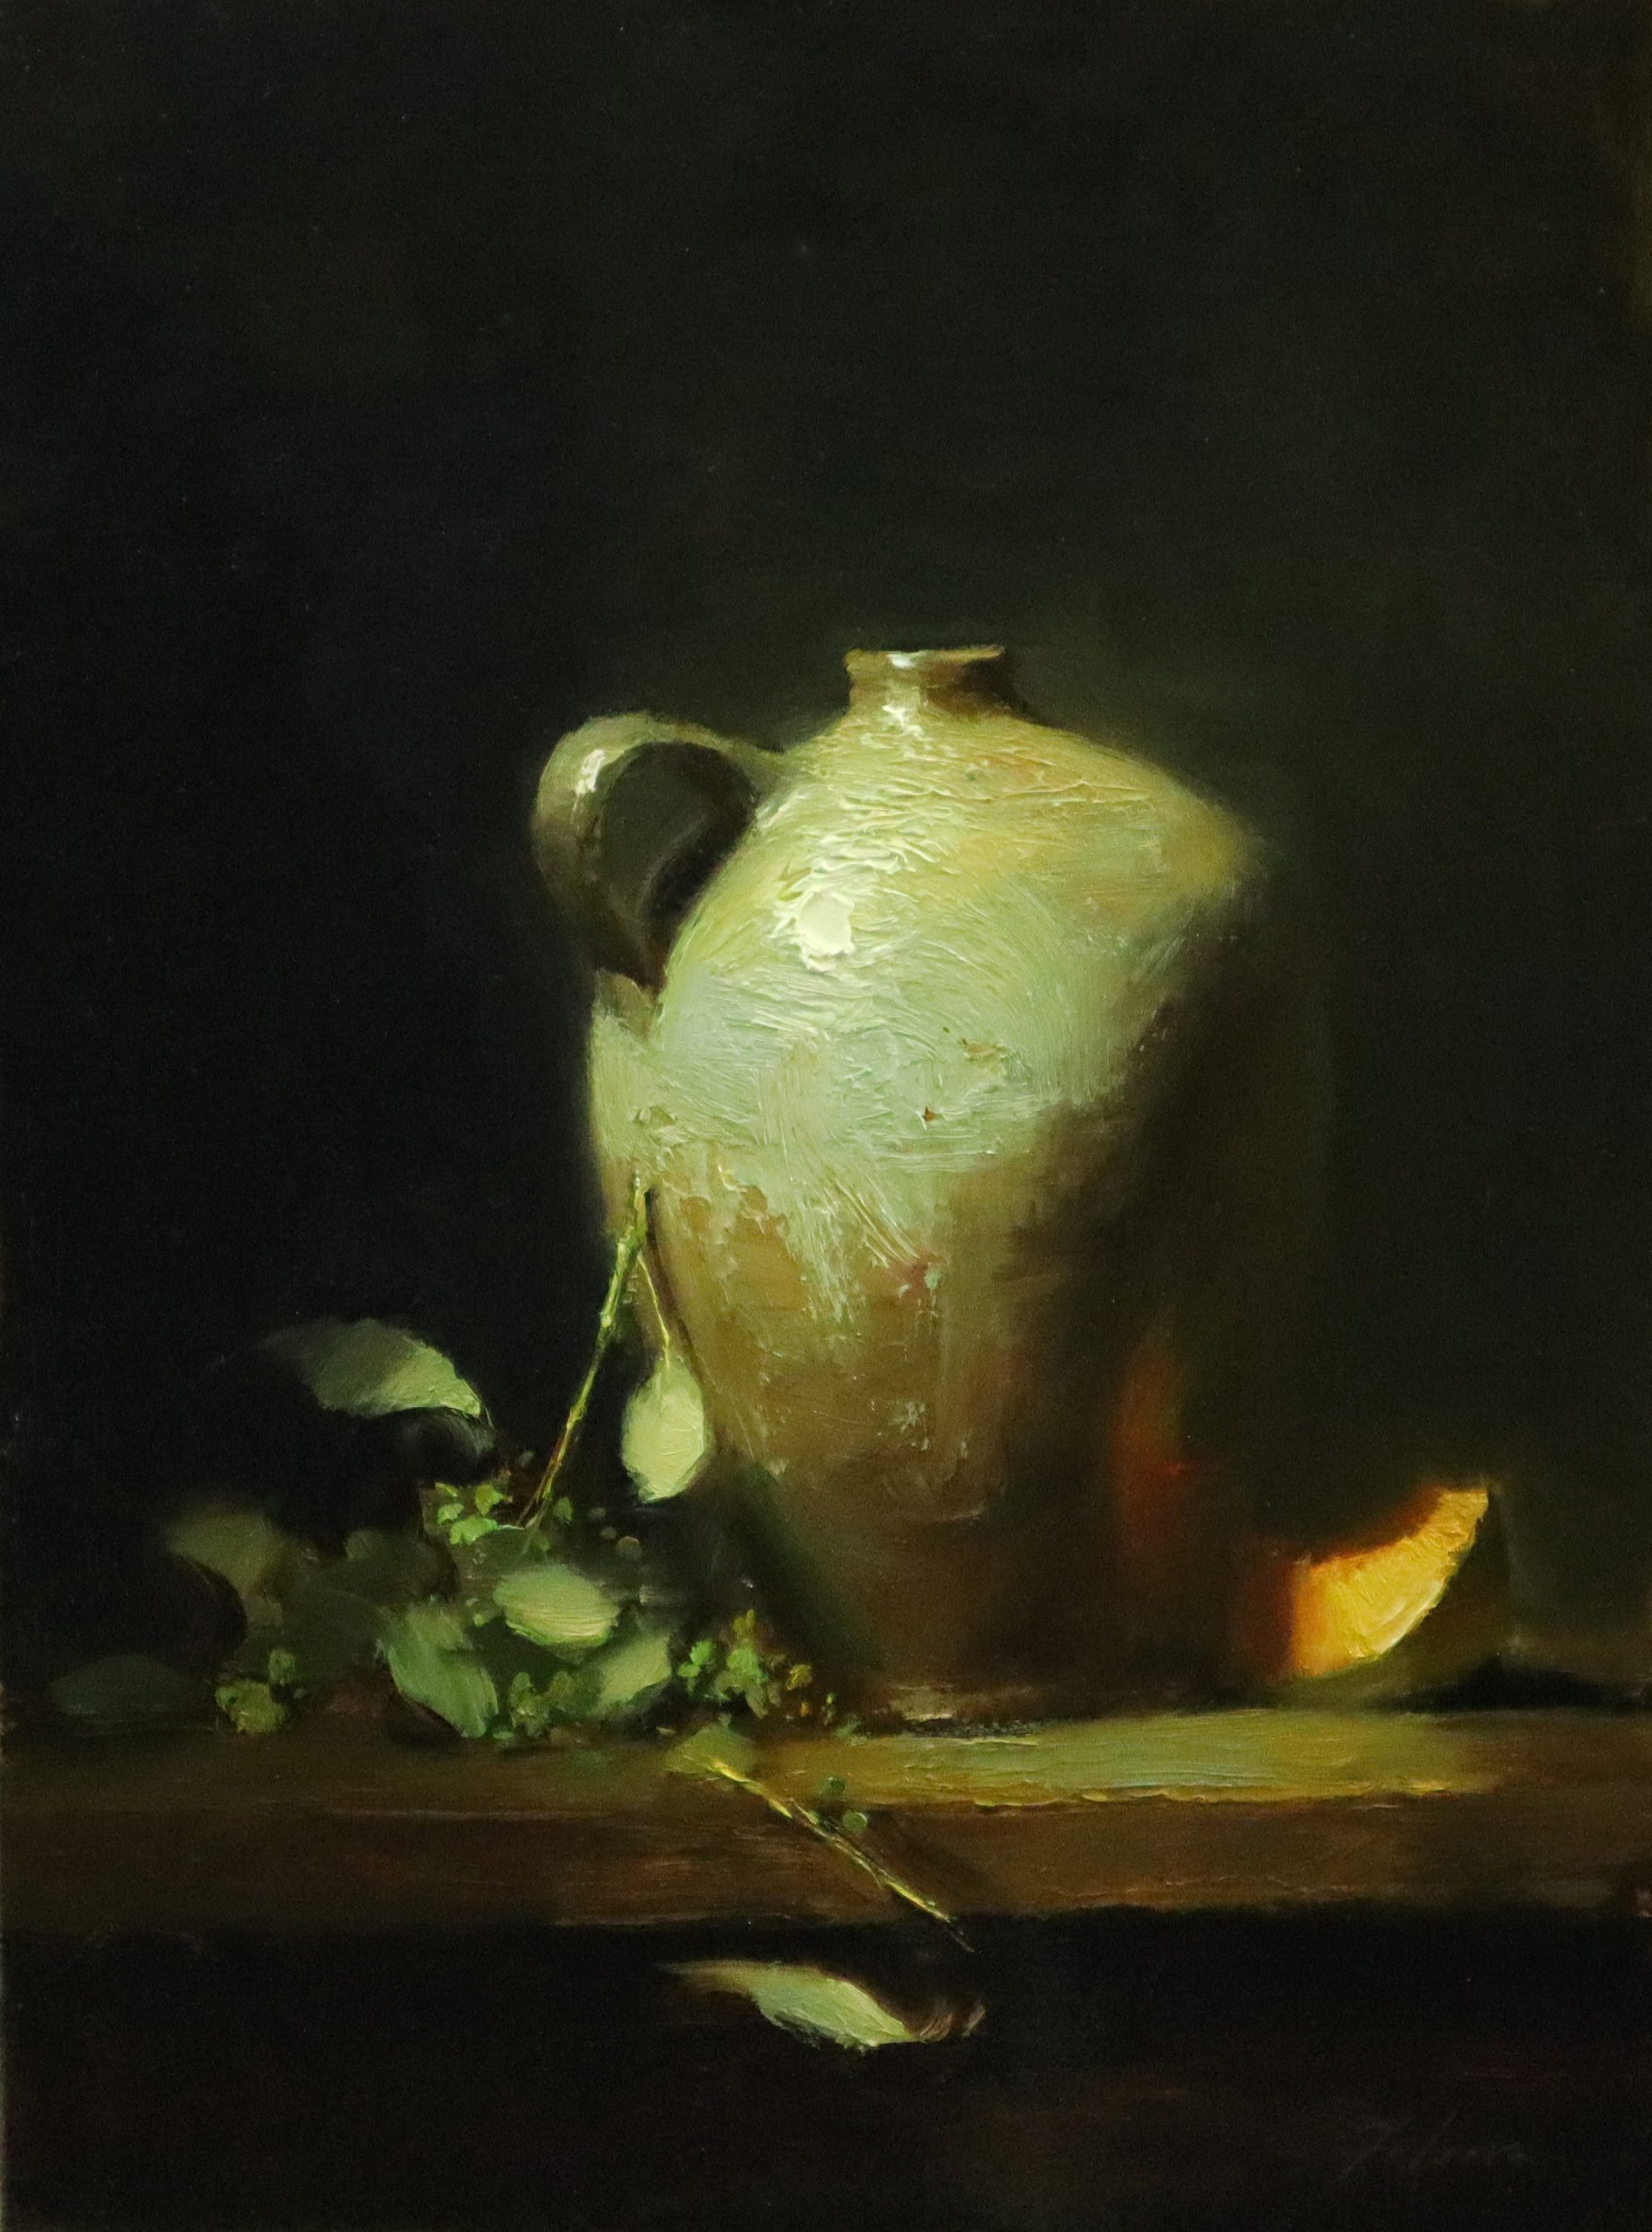 An original oil painting of a still life titled Salt Glazed Jar and Cantaloupe by Kelli Folsom